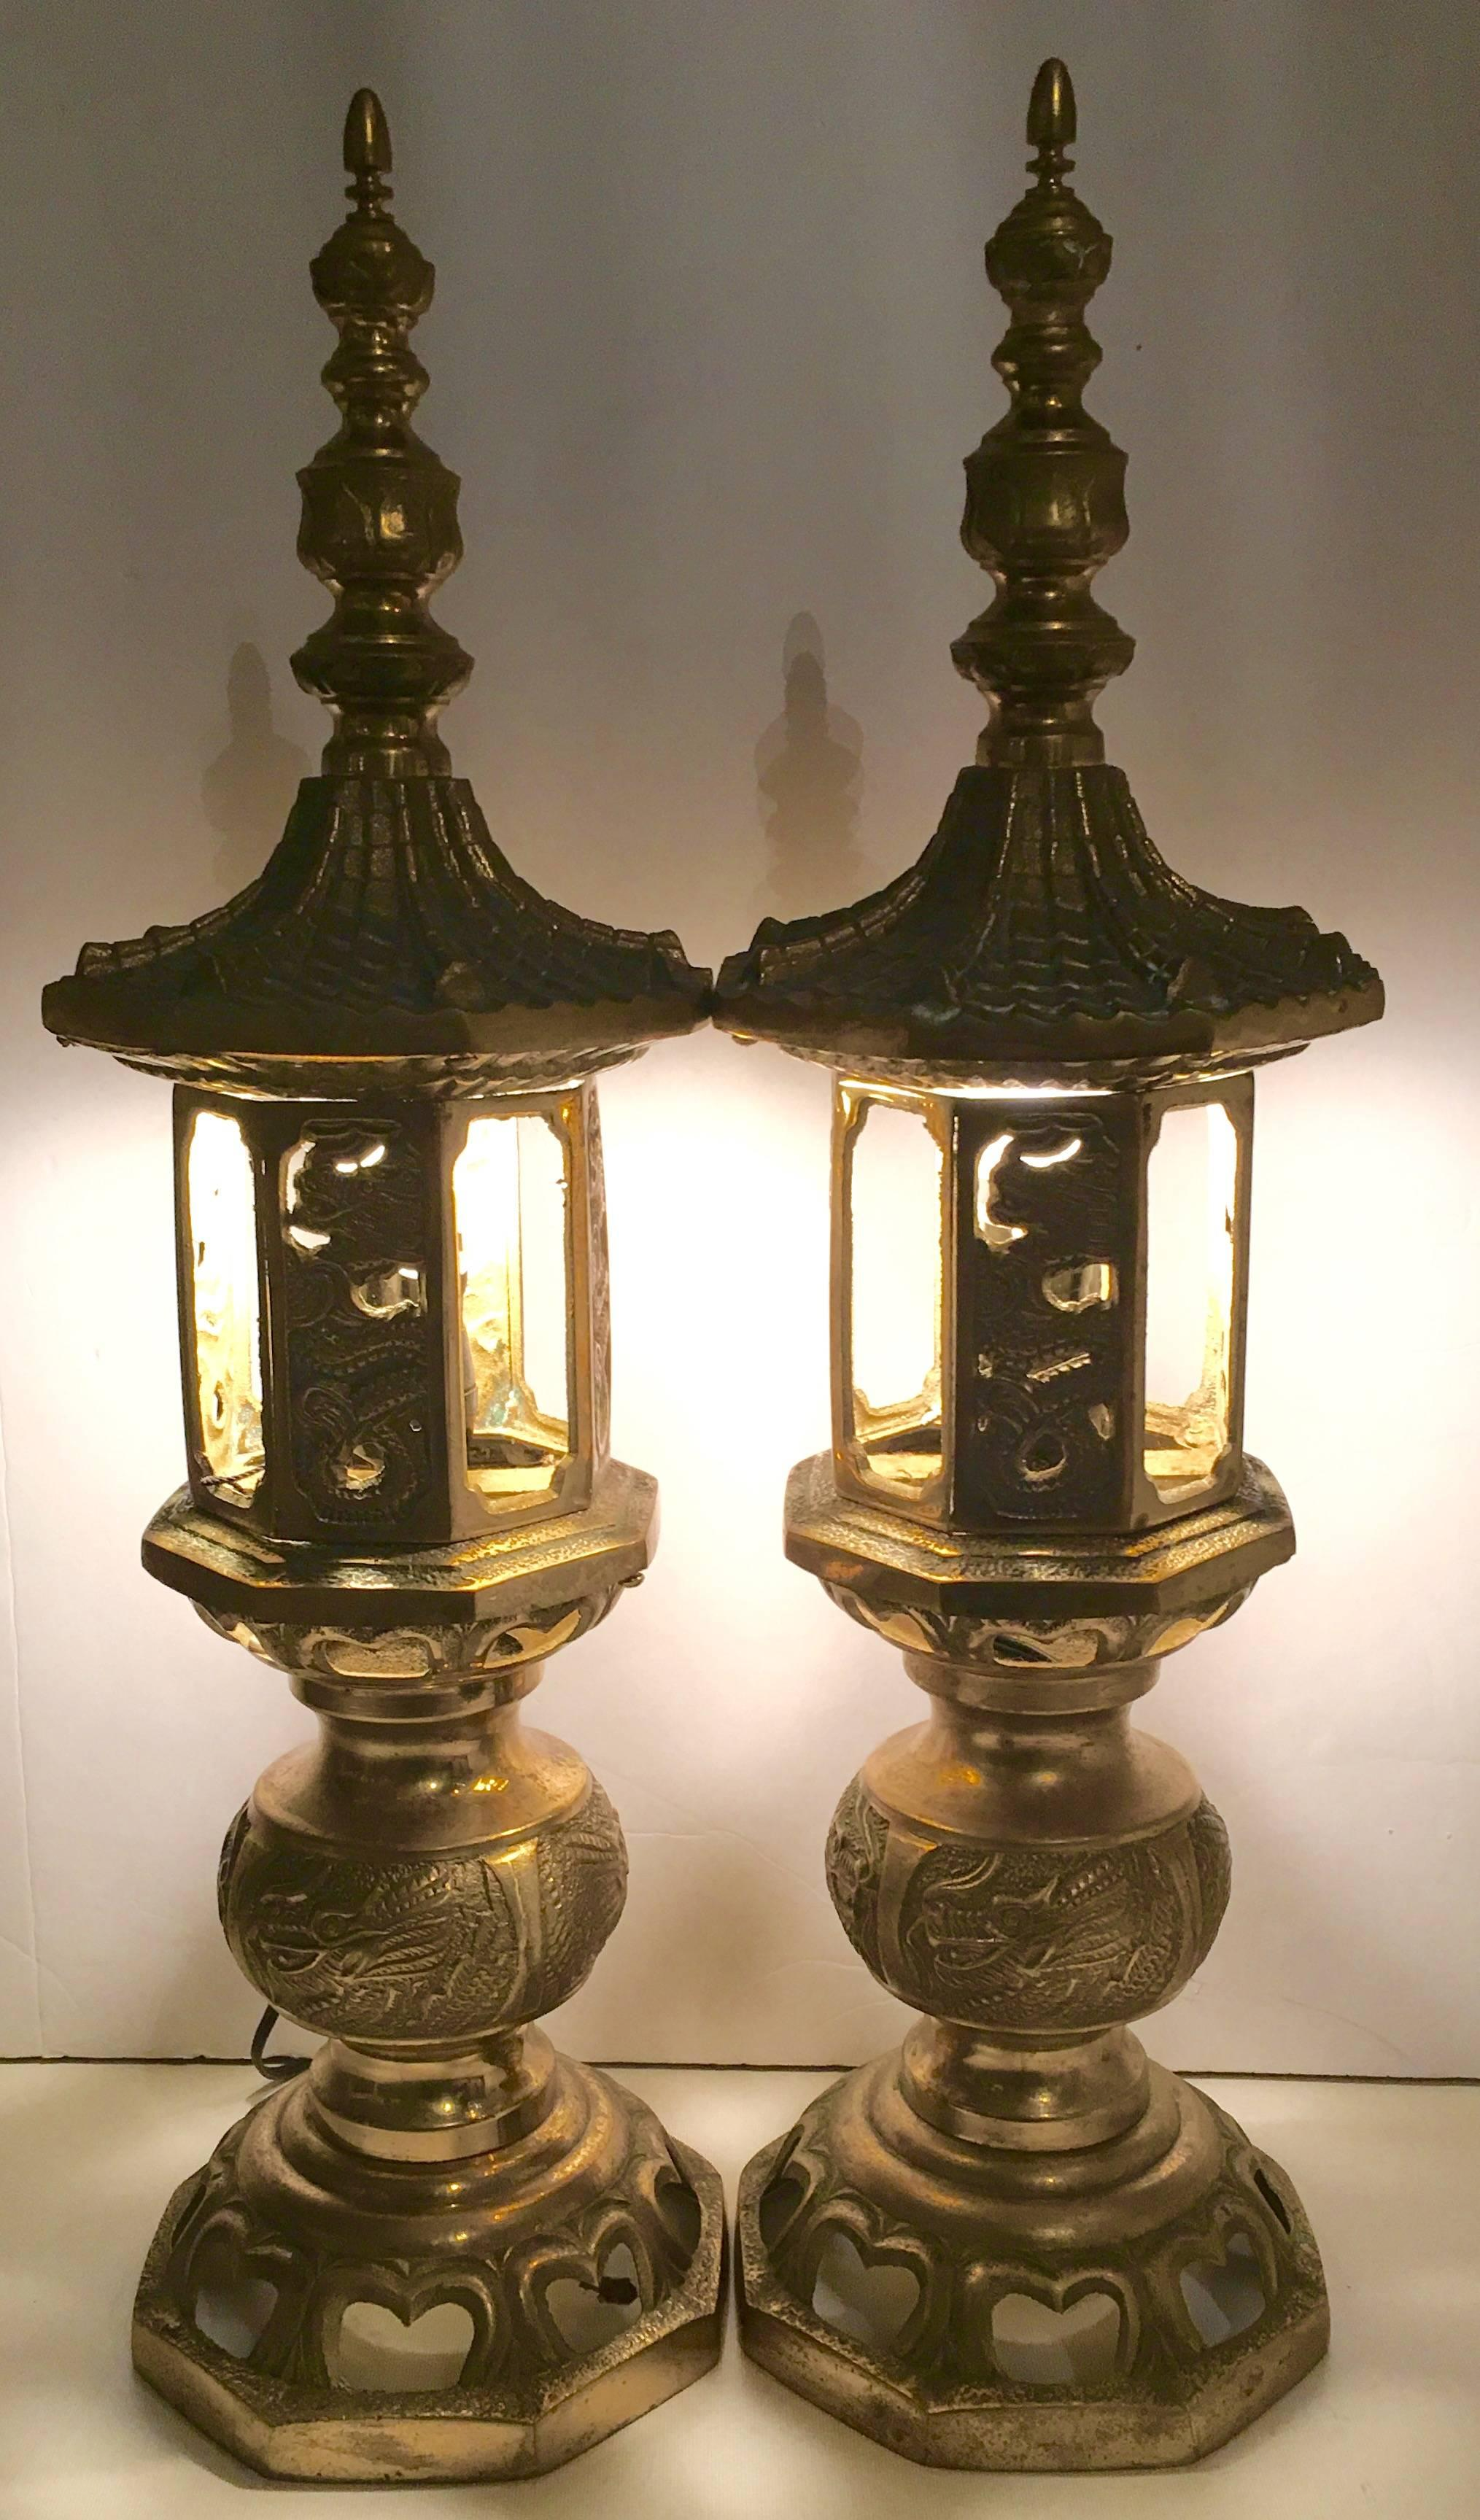 Vintage Chinese Brass Pagoda Temple Table Lamp, Pair